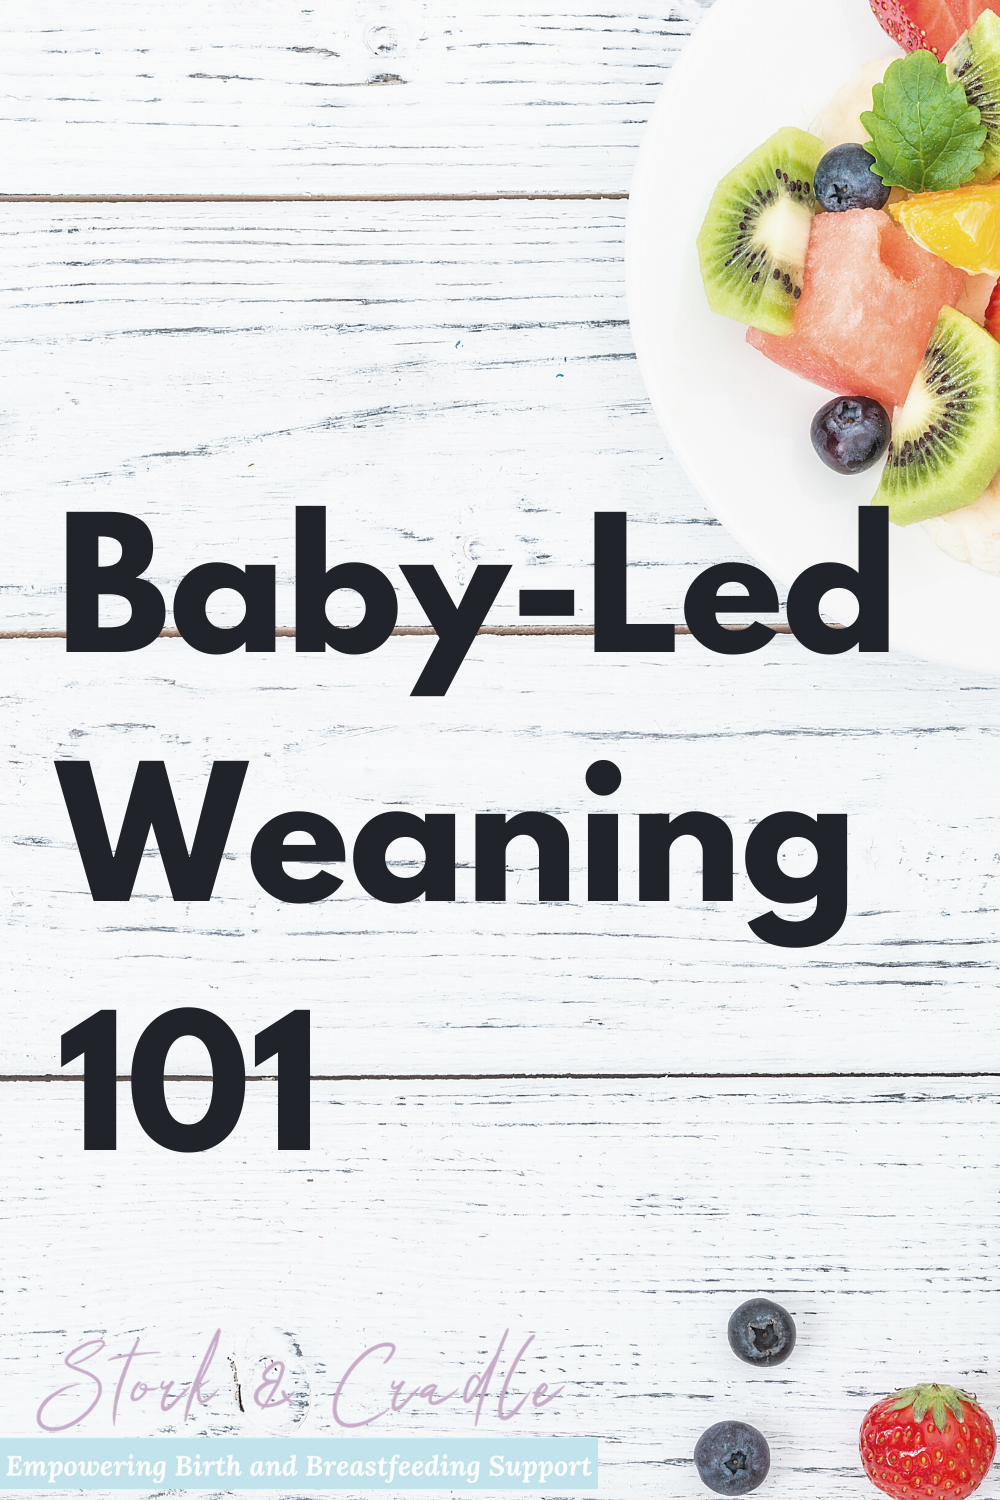 What is Baby-led weaning